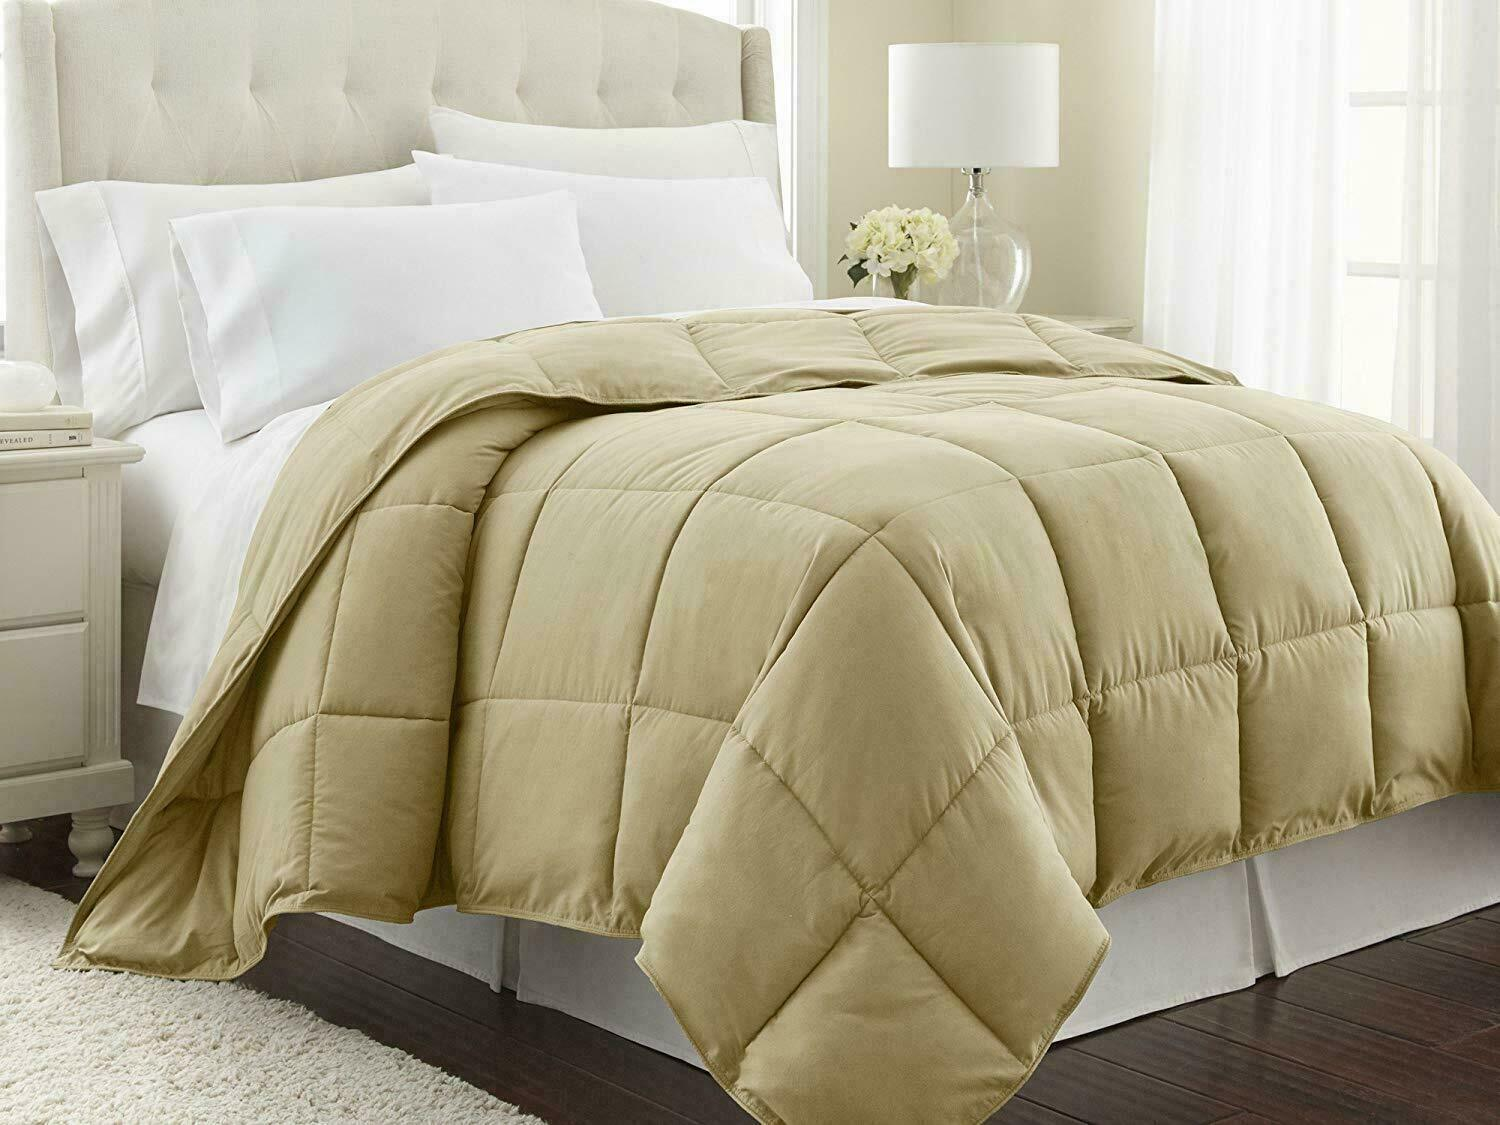 1Piece gold Comforter 100%Cotton 800TC US Size Microfiber Fill Heavy Weight